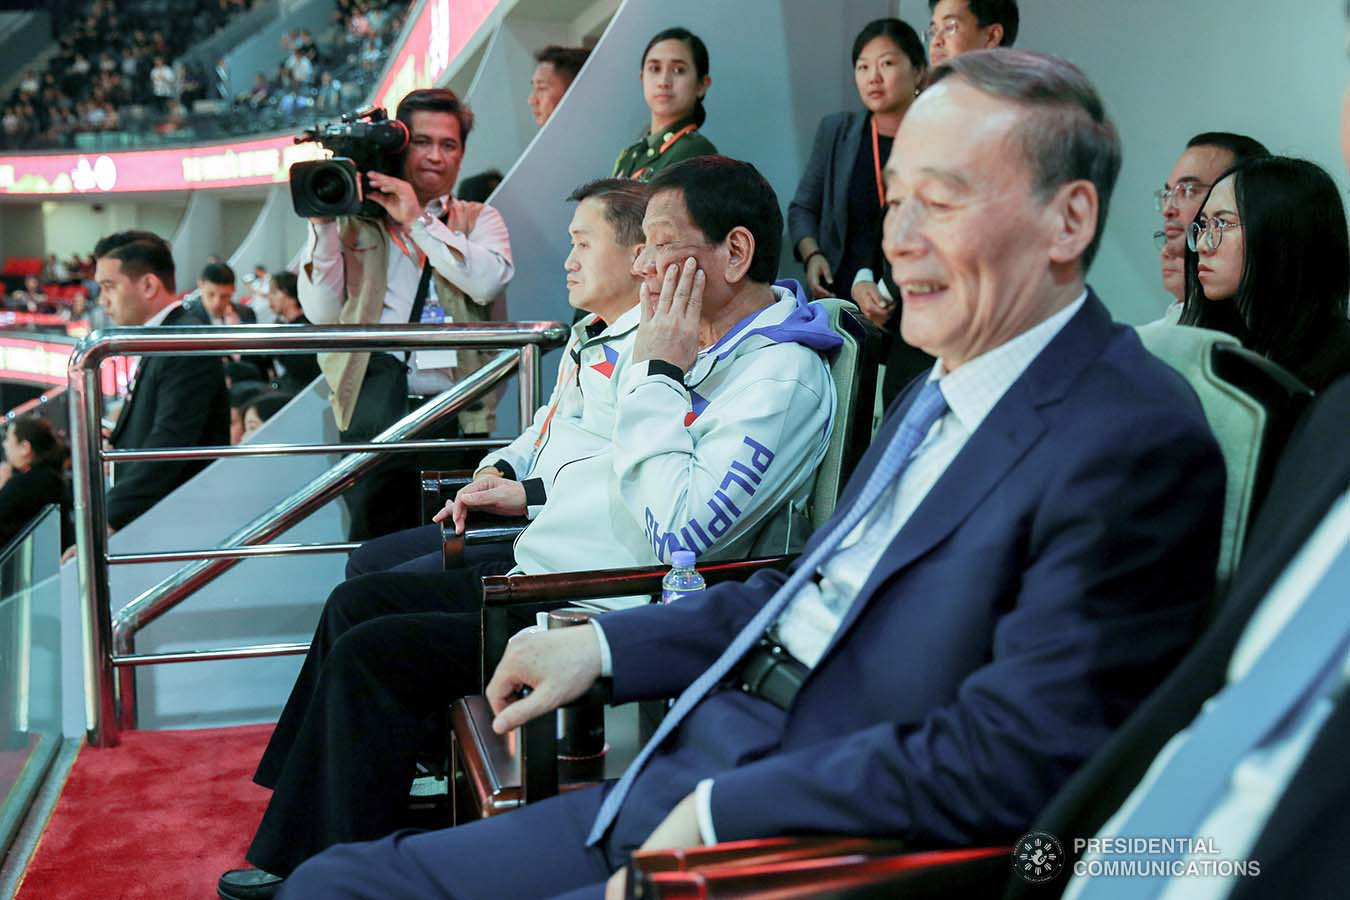 President Rodrigo Roa Duterte is accompanied by People's Republic of China Vice President Wang Qishan as he watches the basketball match of Gilas Pilipinas against Italy during the FIBA Basketball World Cup 2019 game at the Foshan International Sports and Cultural Center in Guangdong on August 31, 2019. With the President is Senator Christopher Lawrence Go. SIMEON CELI/ PRESIDENTIAL PHOTO